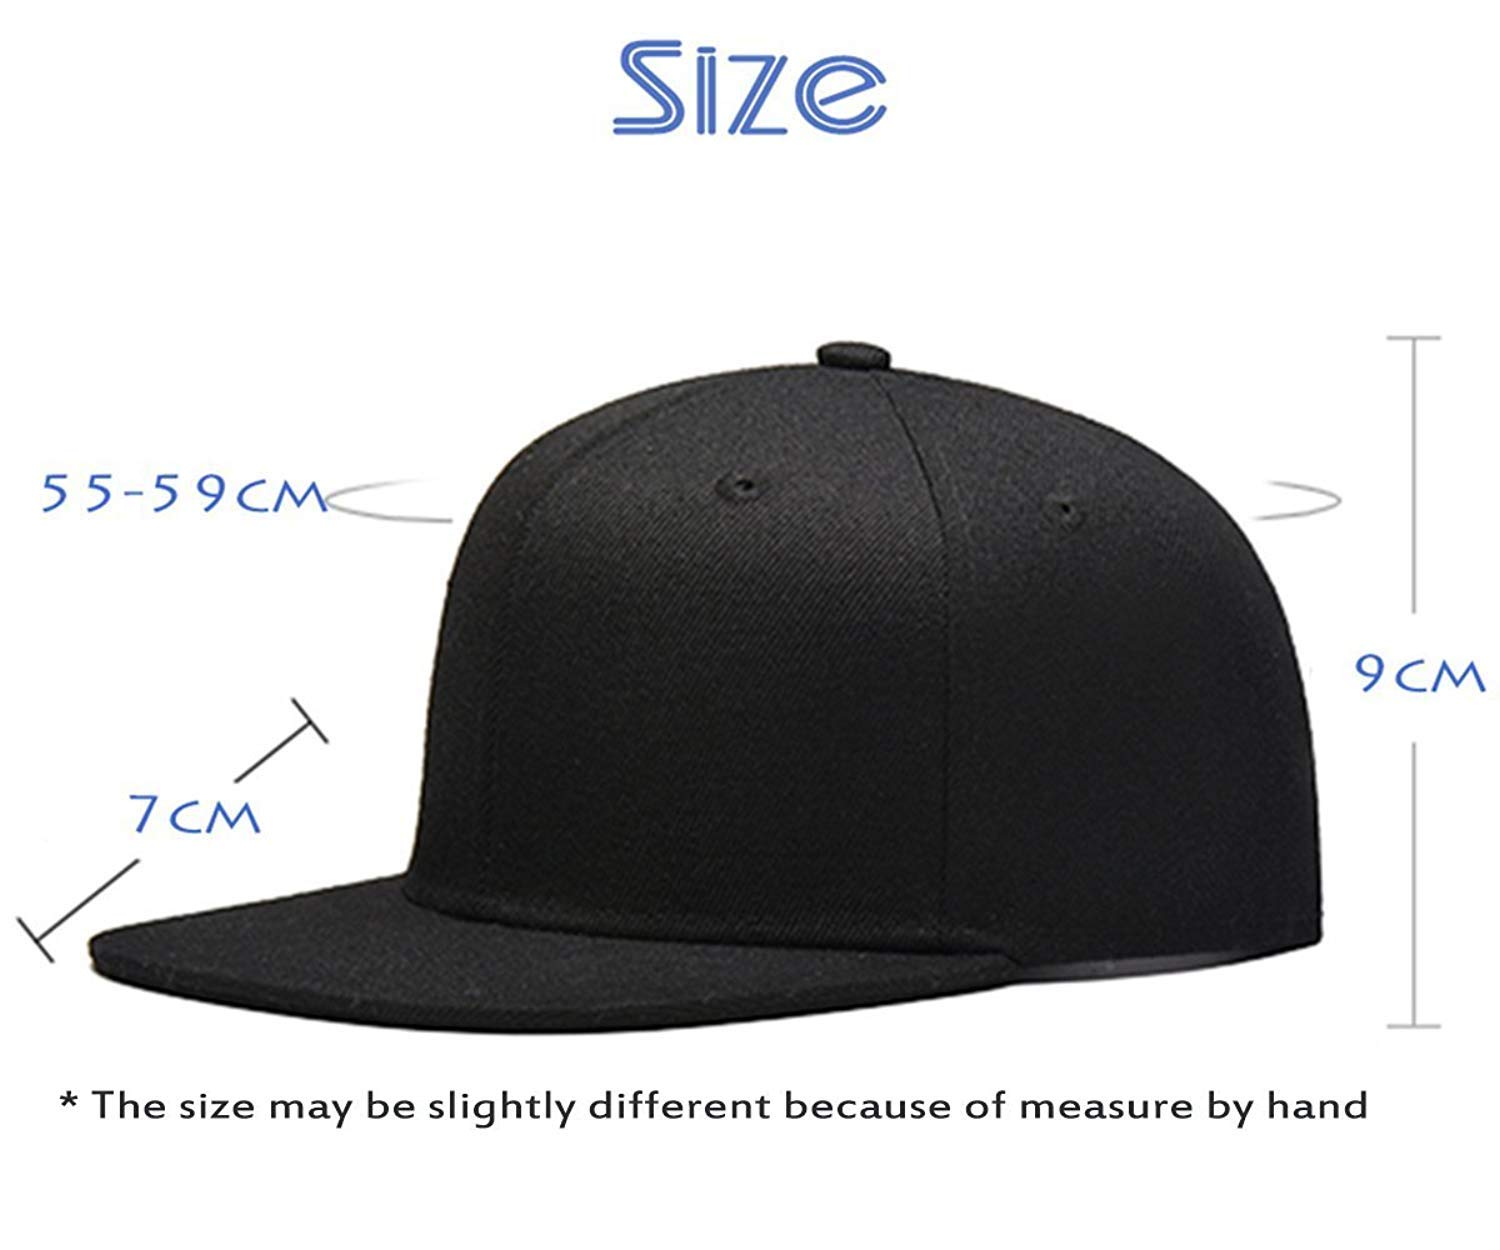 Fashion Home Gorros de béisbol Nerd con Texto en inglés No Flux Dad de Math Physics. Gorras de Tumblr Backsnap Hip Hop para Hombres y Mujeres, ...